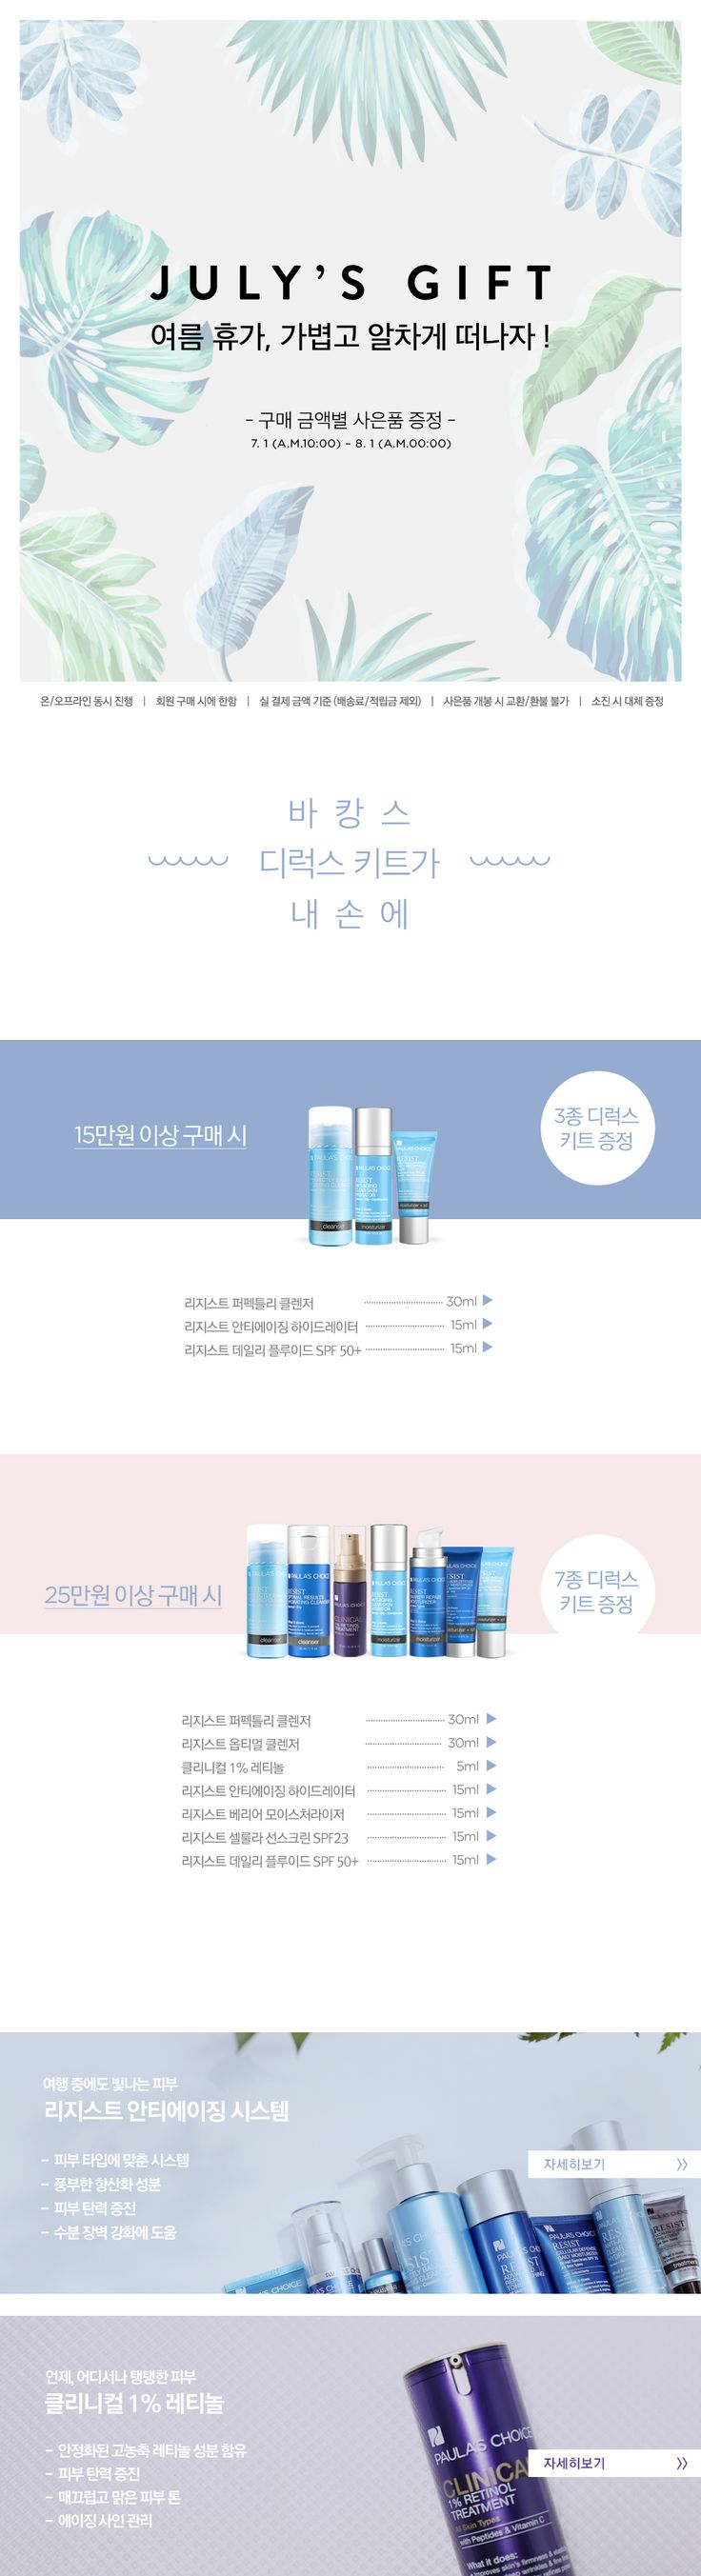 [PAULA'S CHOICE] WEBDESIGN / WEB / DESIGN / PAGE / EVENT / PAGE / SALE / PR / COSMETIC / SKINCARE / 이벤트페이지 / 폴라초이스 / 웹디자인 / 화장품